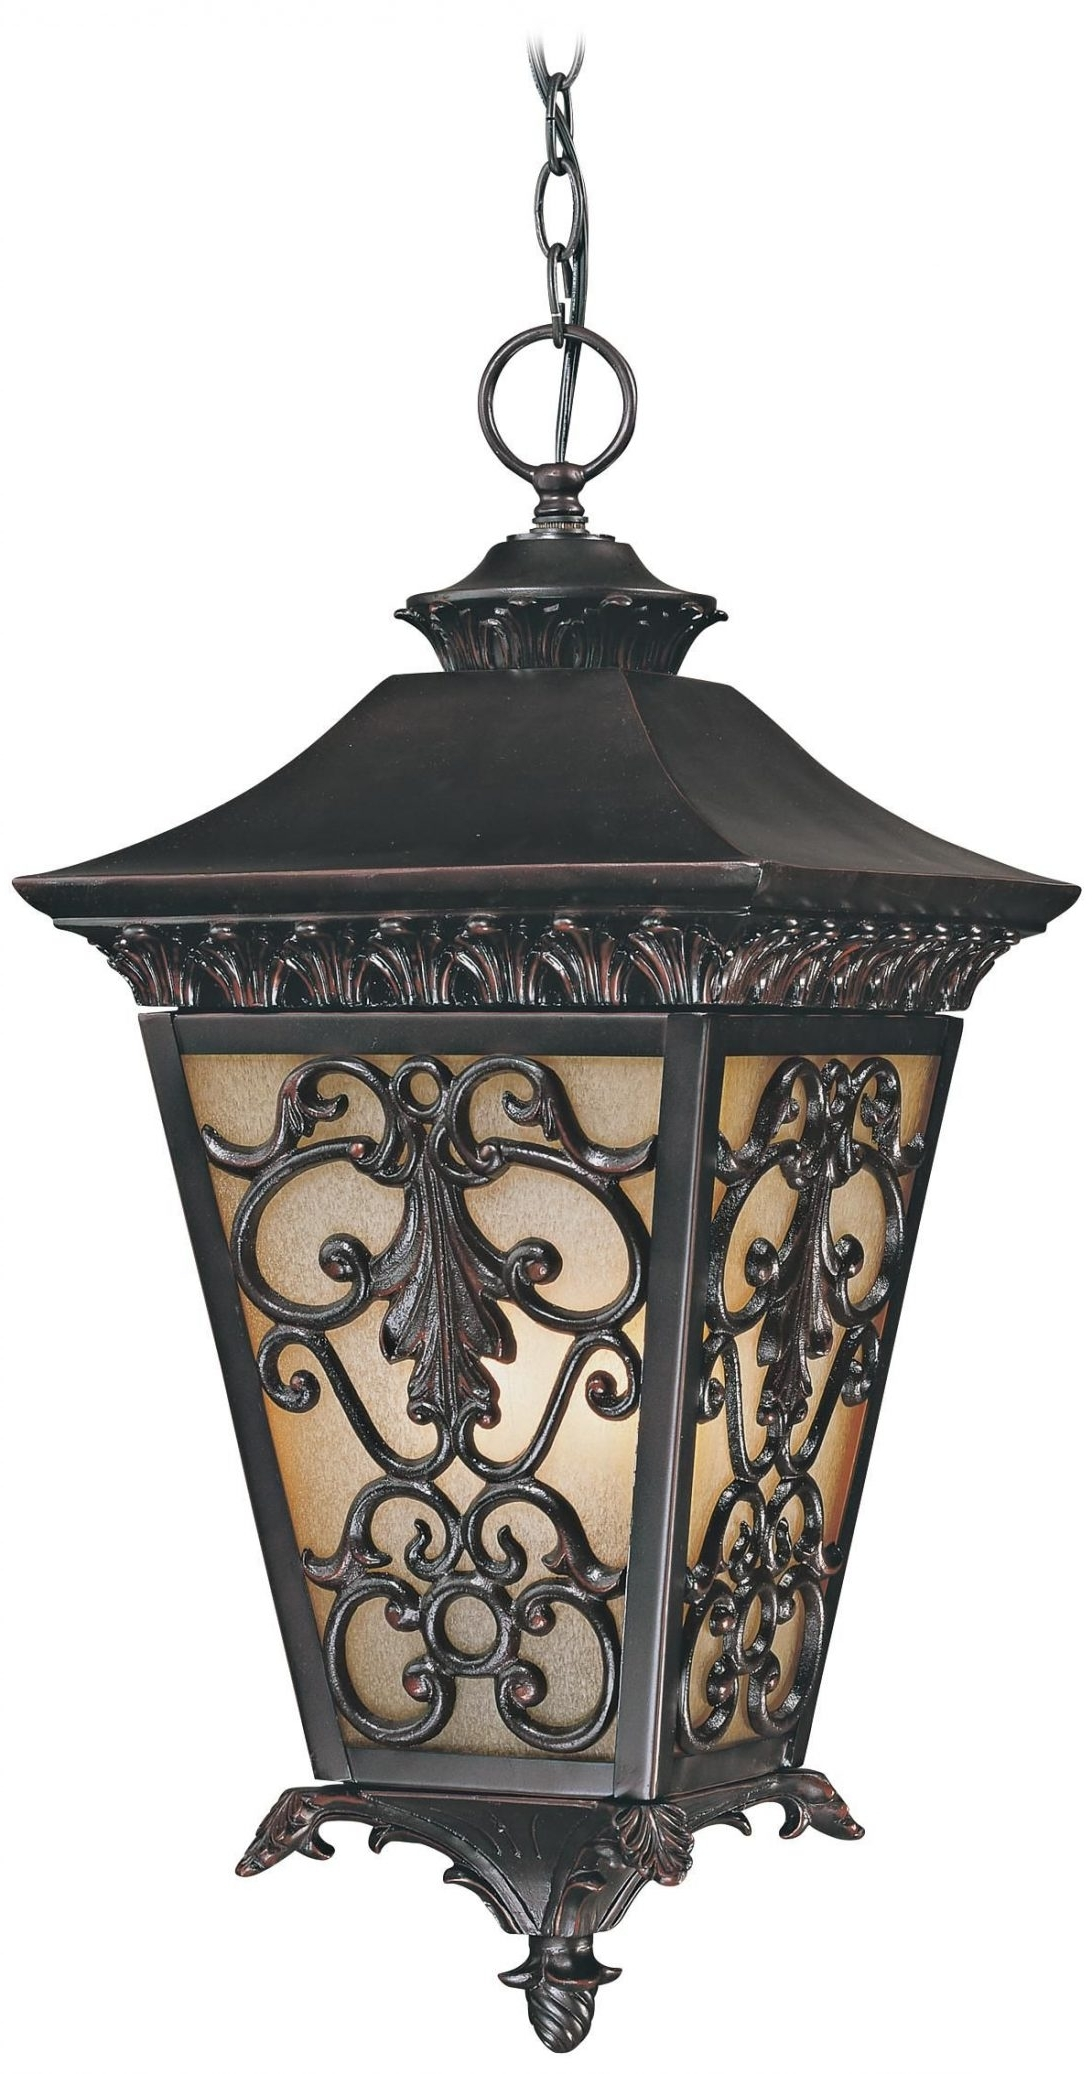 Victorian Outdoor Lanterns Intended For Popular Antique Porch Lights Victorian – Image Antique And Candle (View 16 of 20)